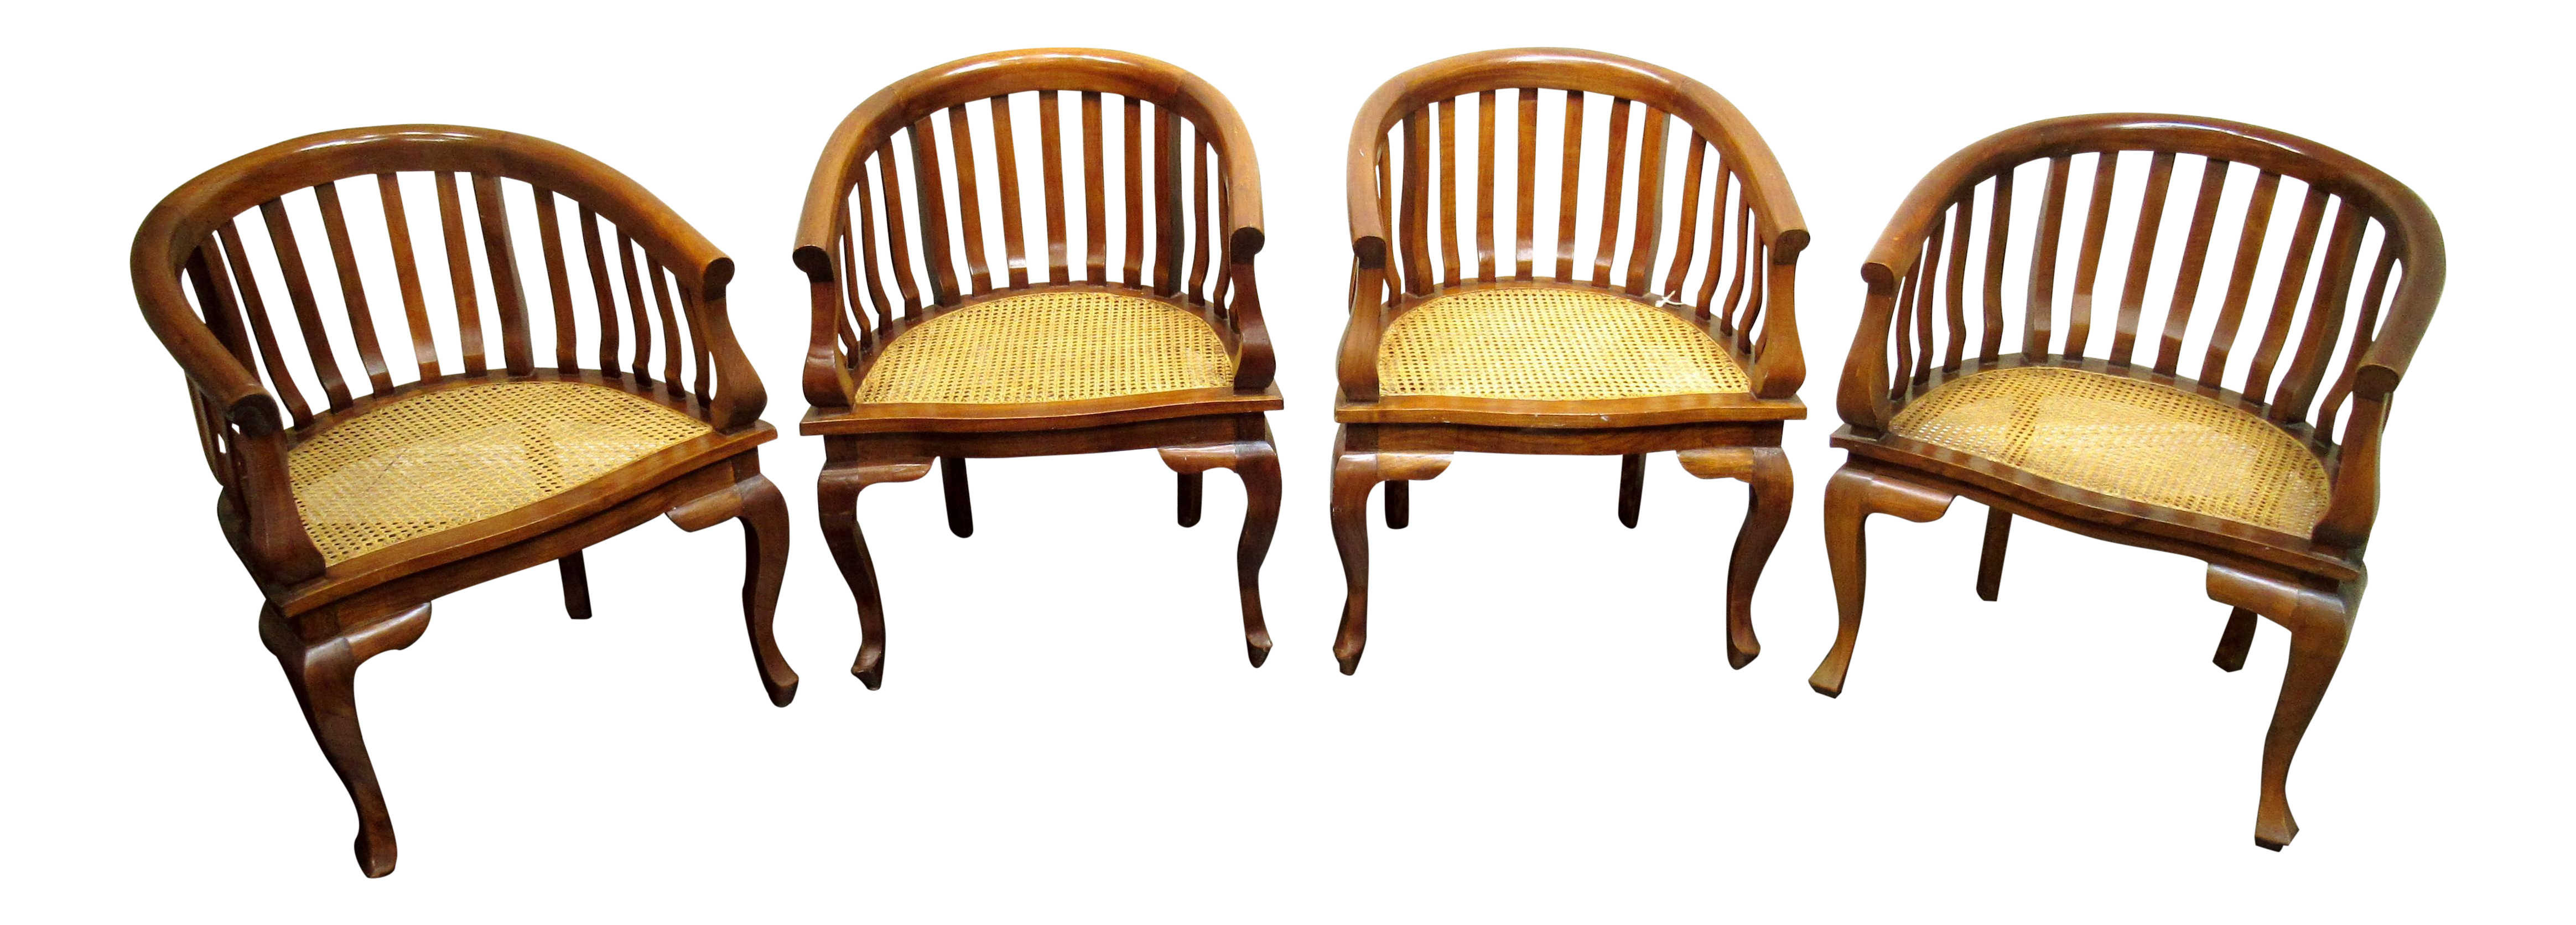 Bauer Barrel Chairs   Set Of 4